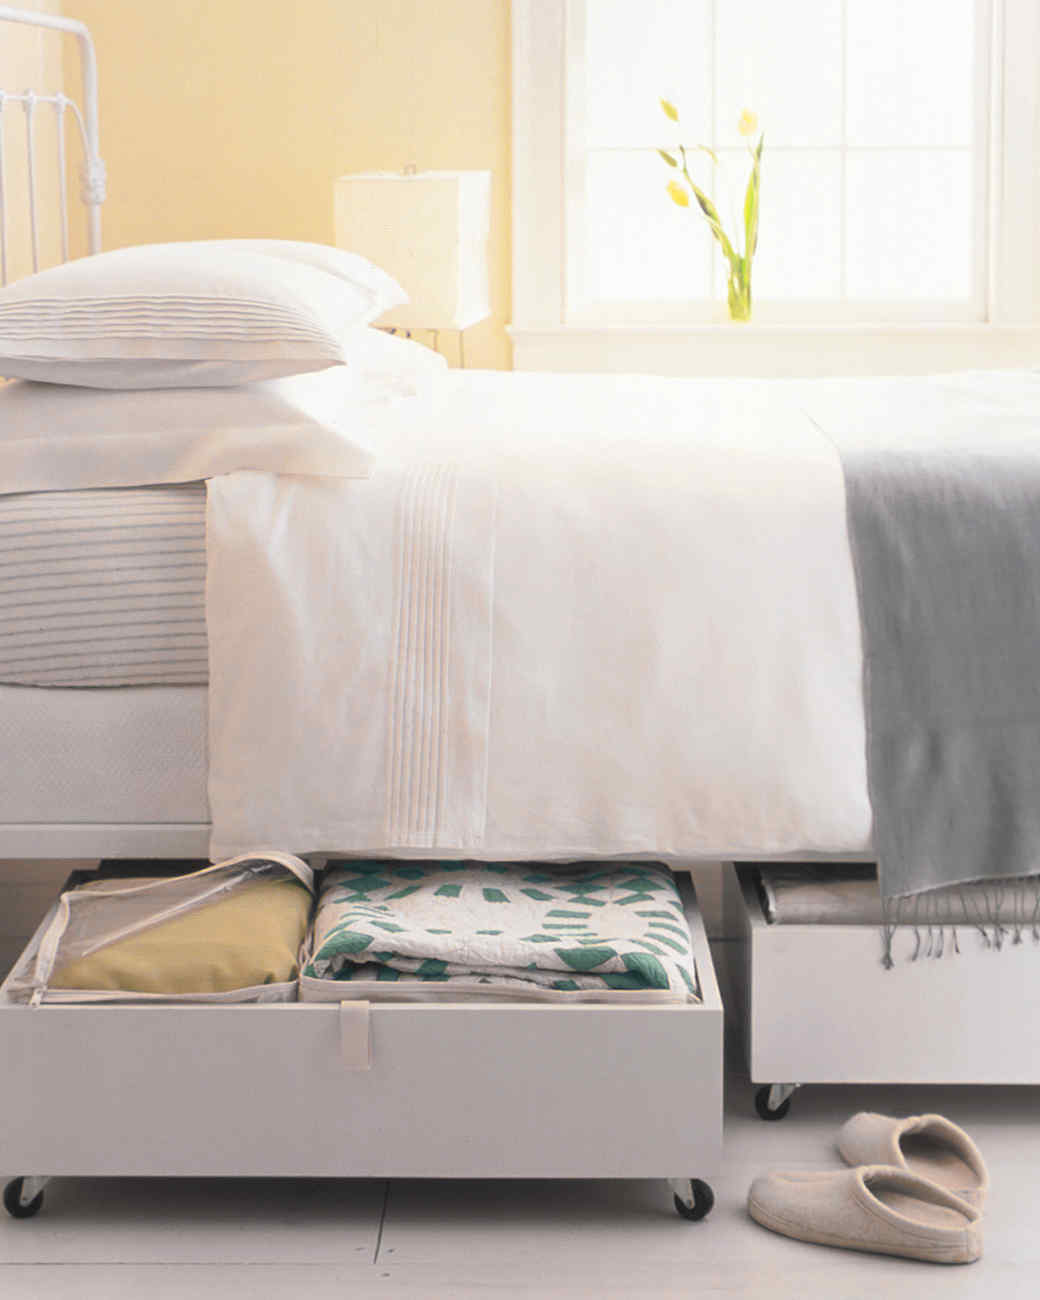 Organize Bedroom bedroom organization tricks | martha stewart